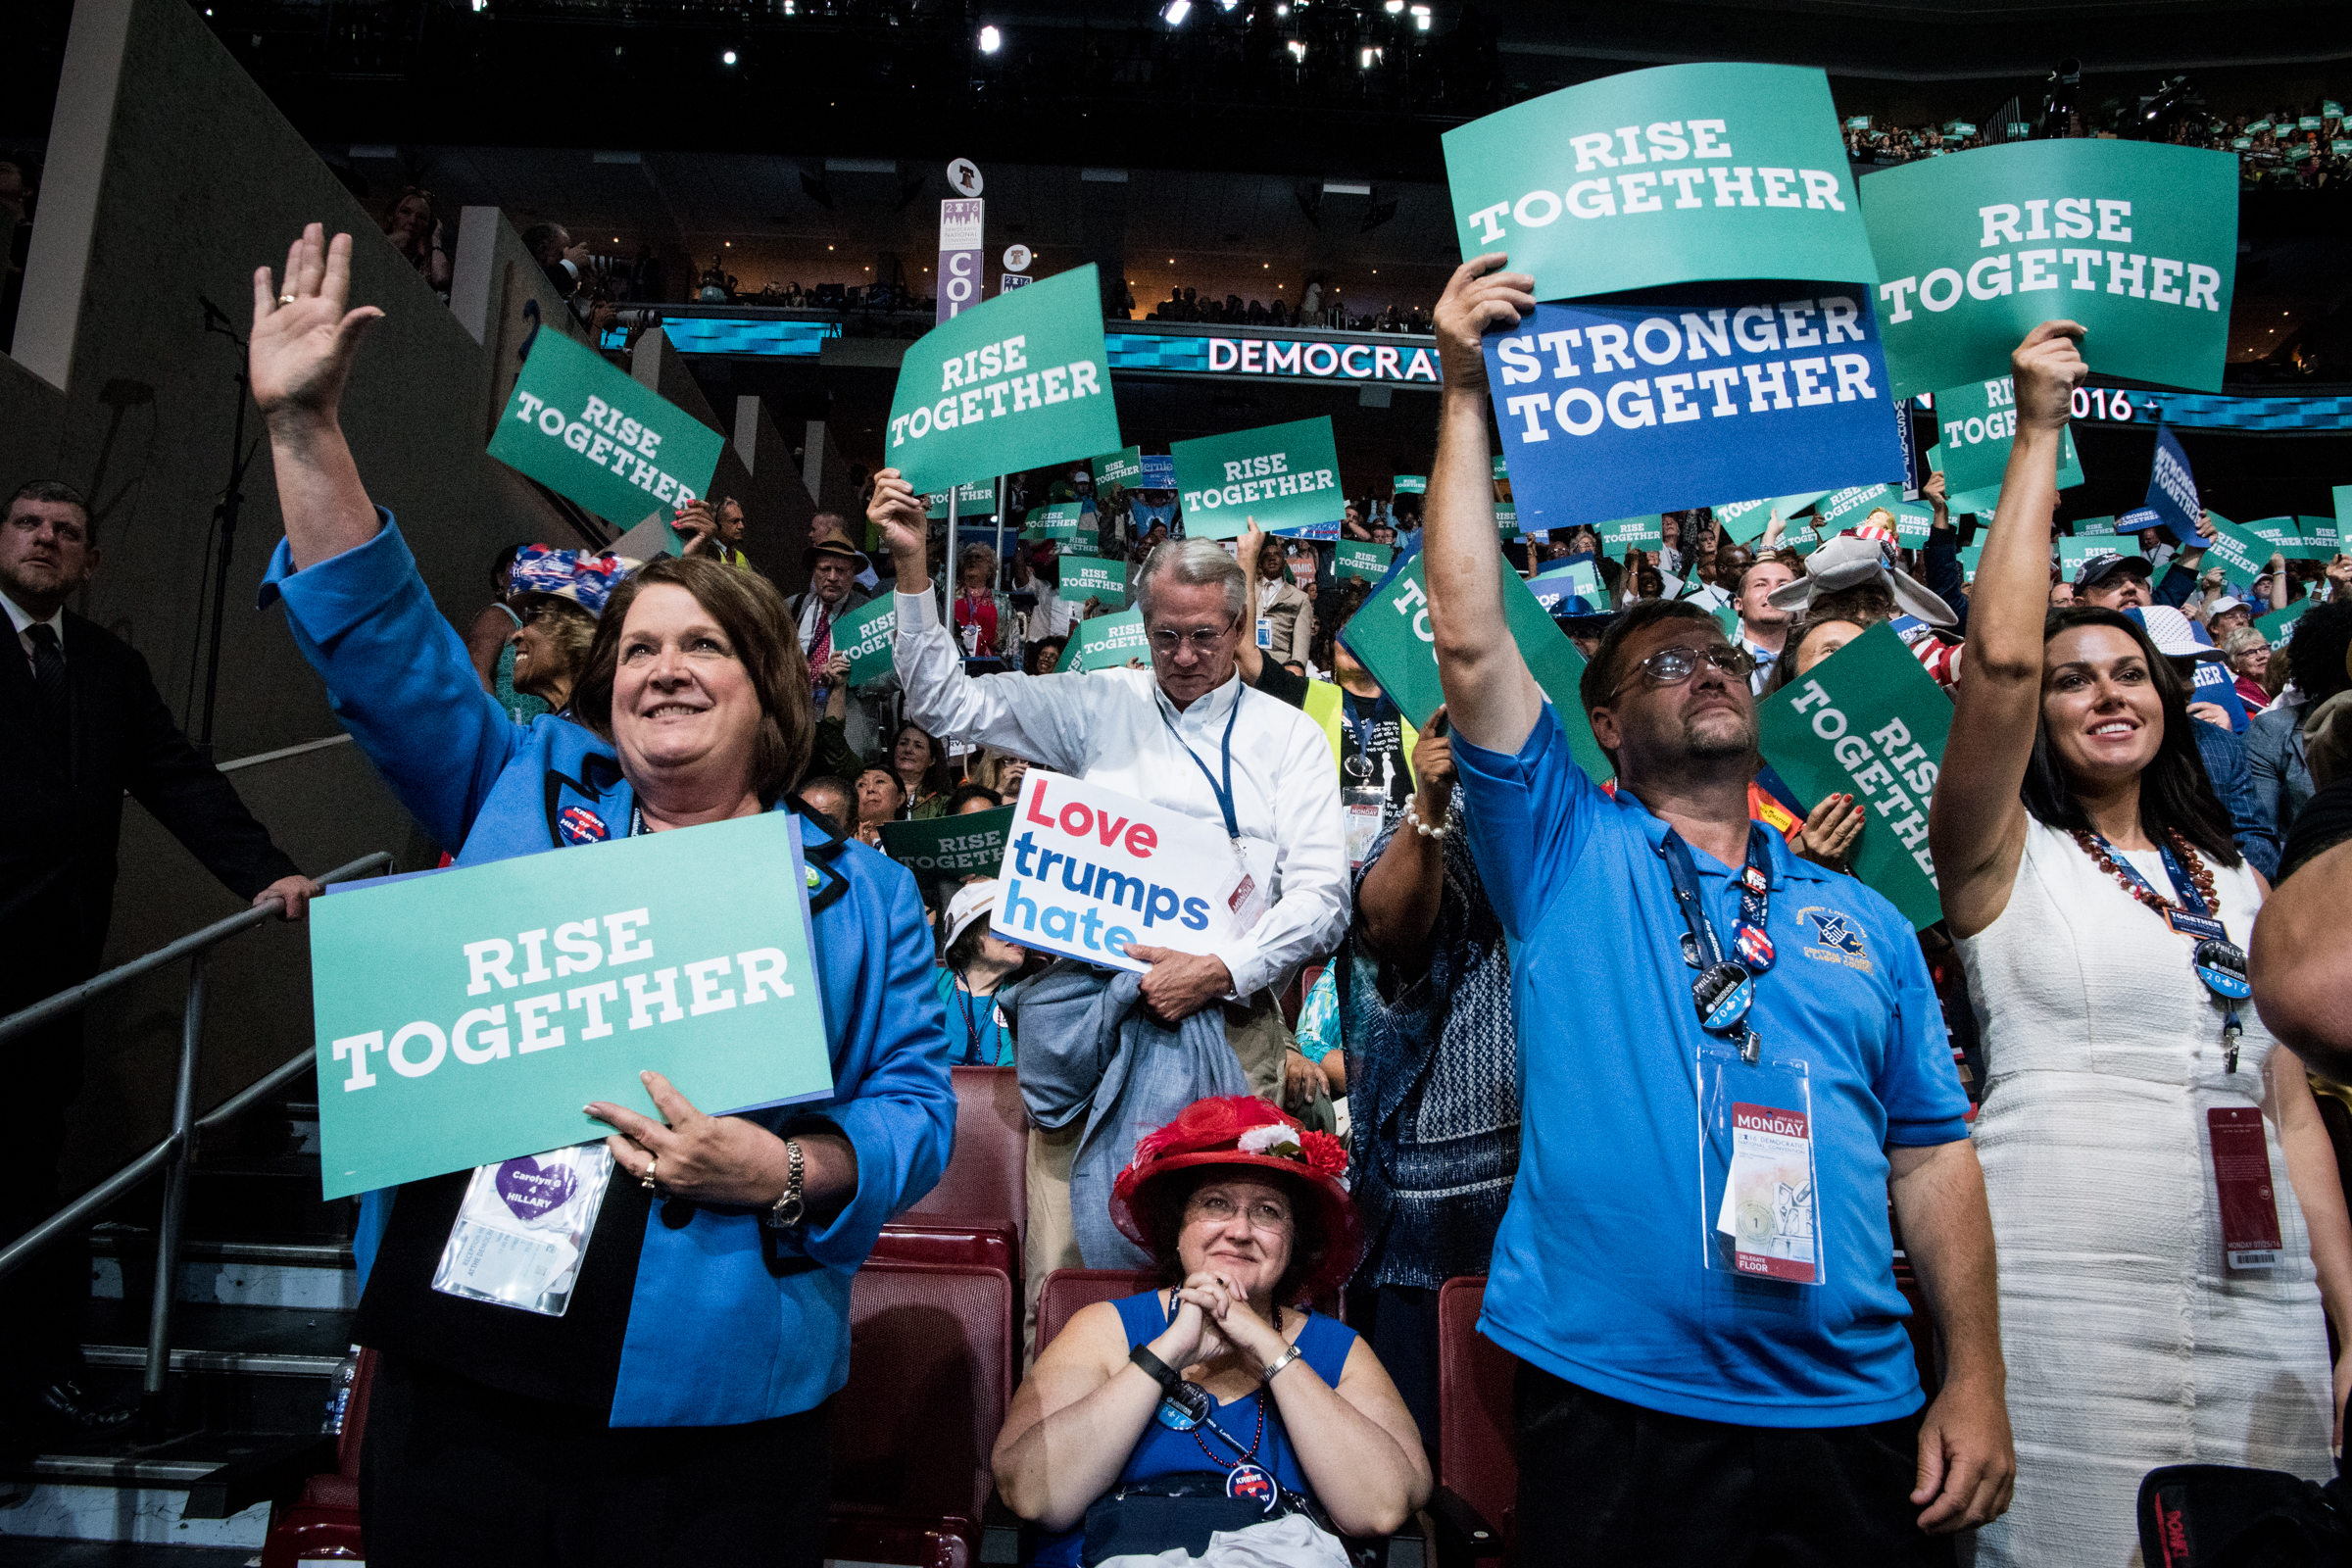 Delegates cheer as Senator Cory Booker, D-NJ, delivers his speech during the Democratic National Convention on Monday, July 25, 2016 at the Wells Fargo Center in Philadelphia. (Michael Ares / Philadelphia Inquirer)